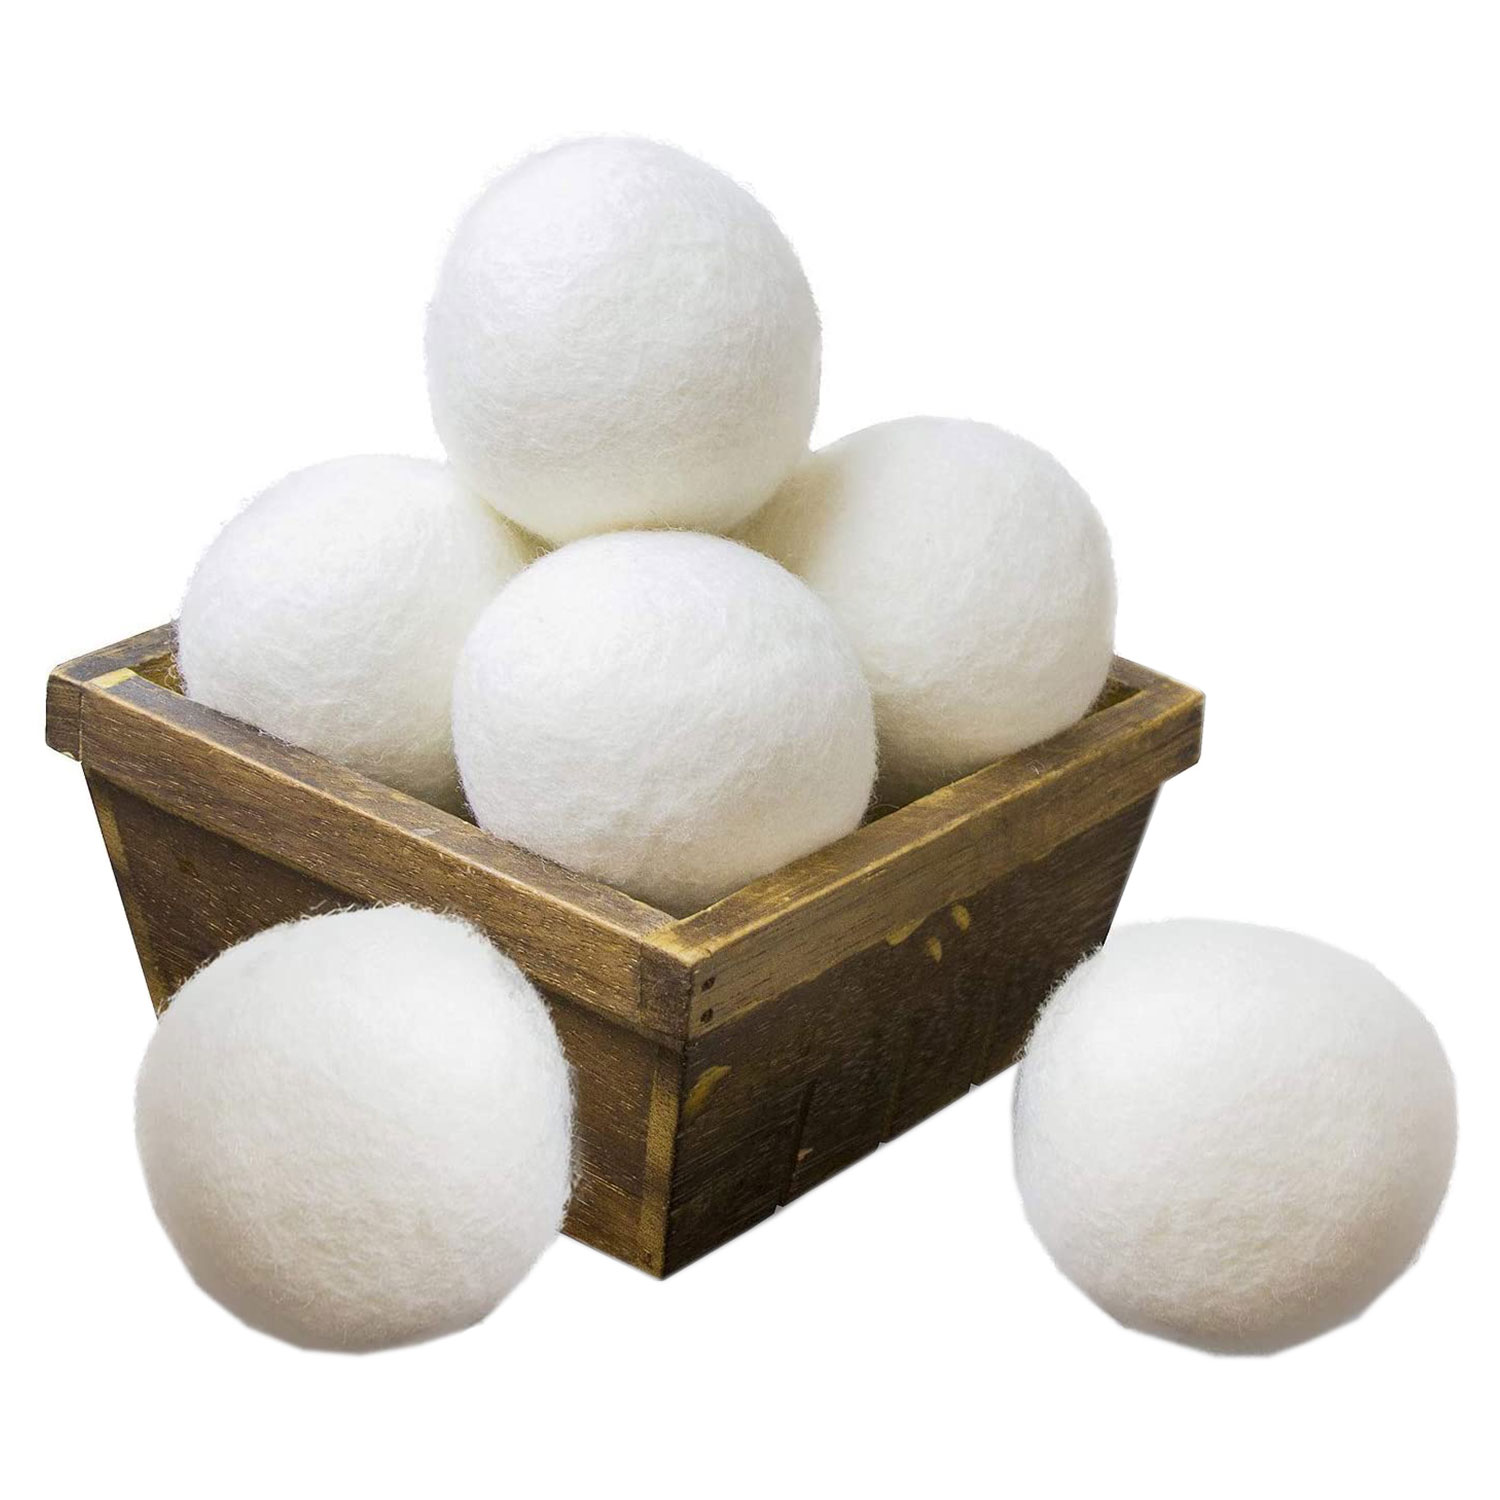 snugpad wool dryer ball